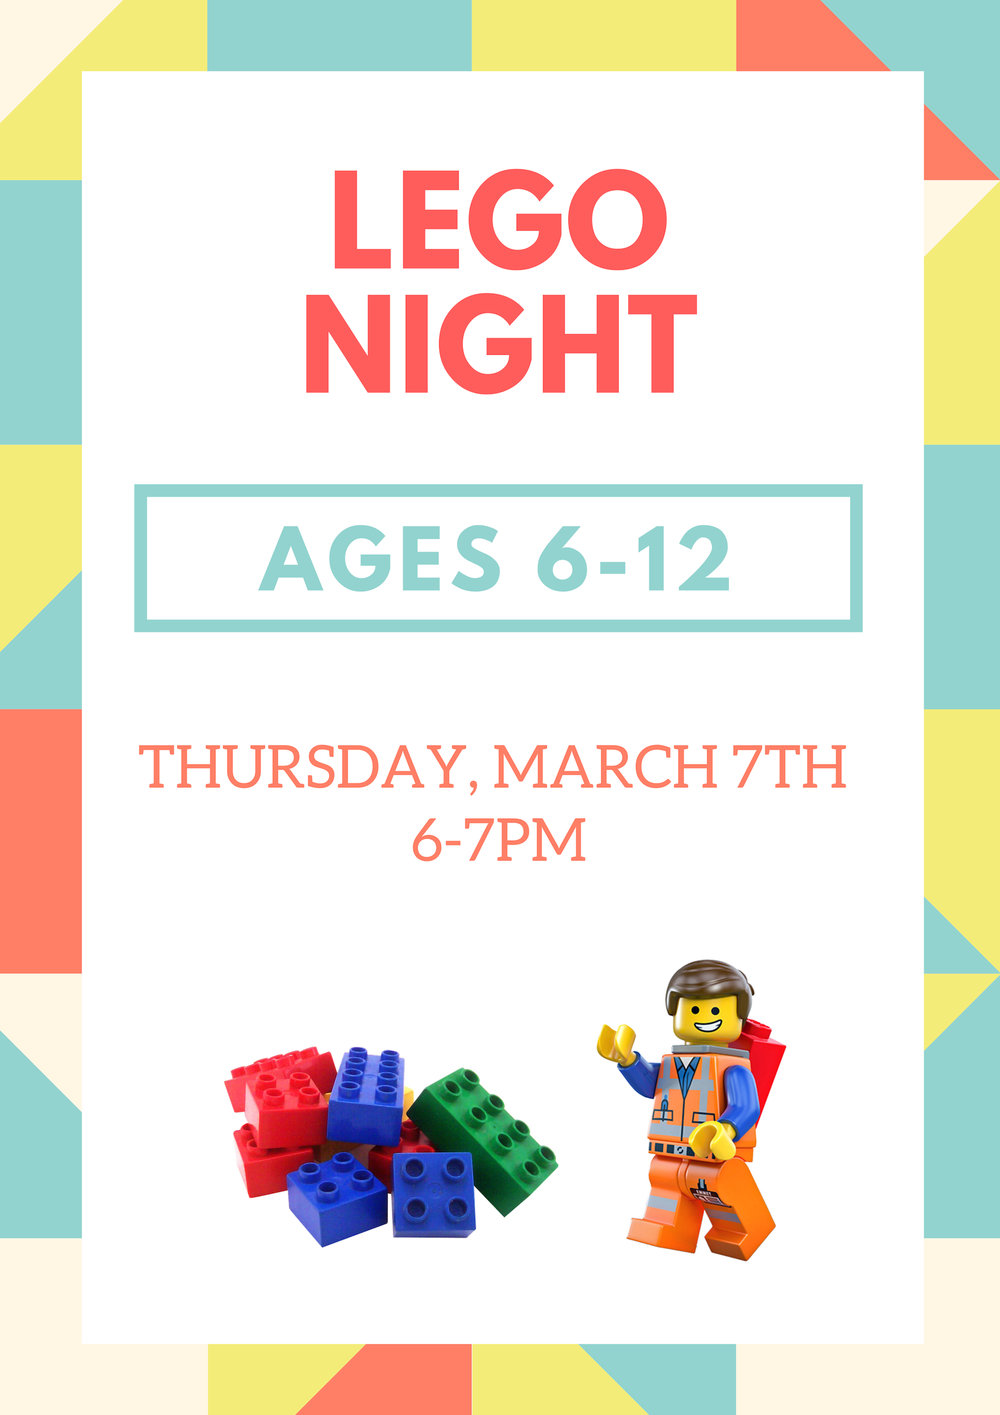 Holt Lego Night March.jpg